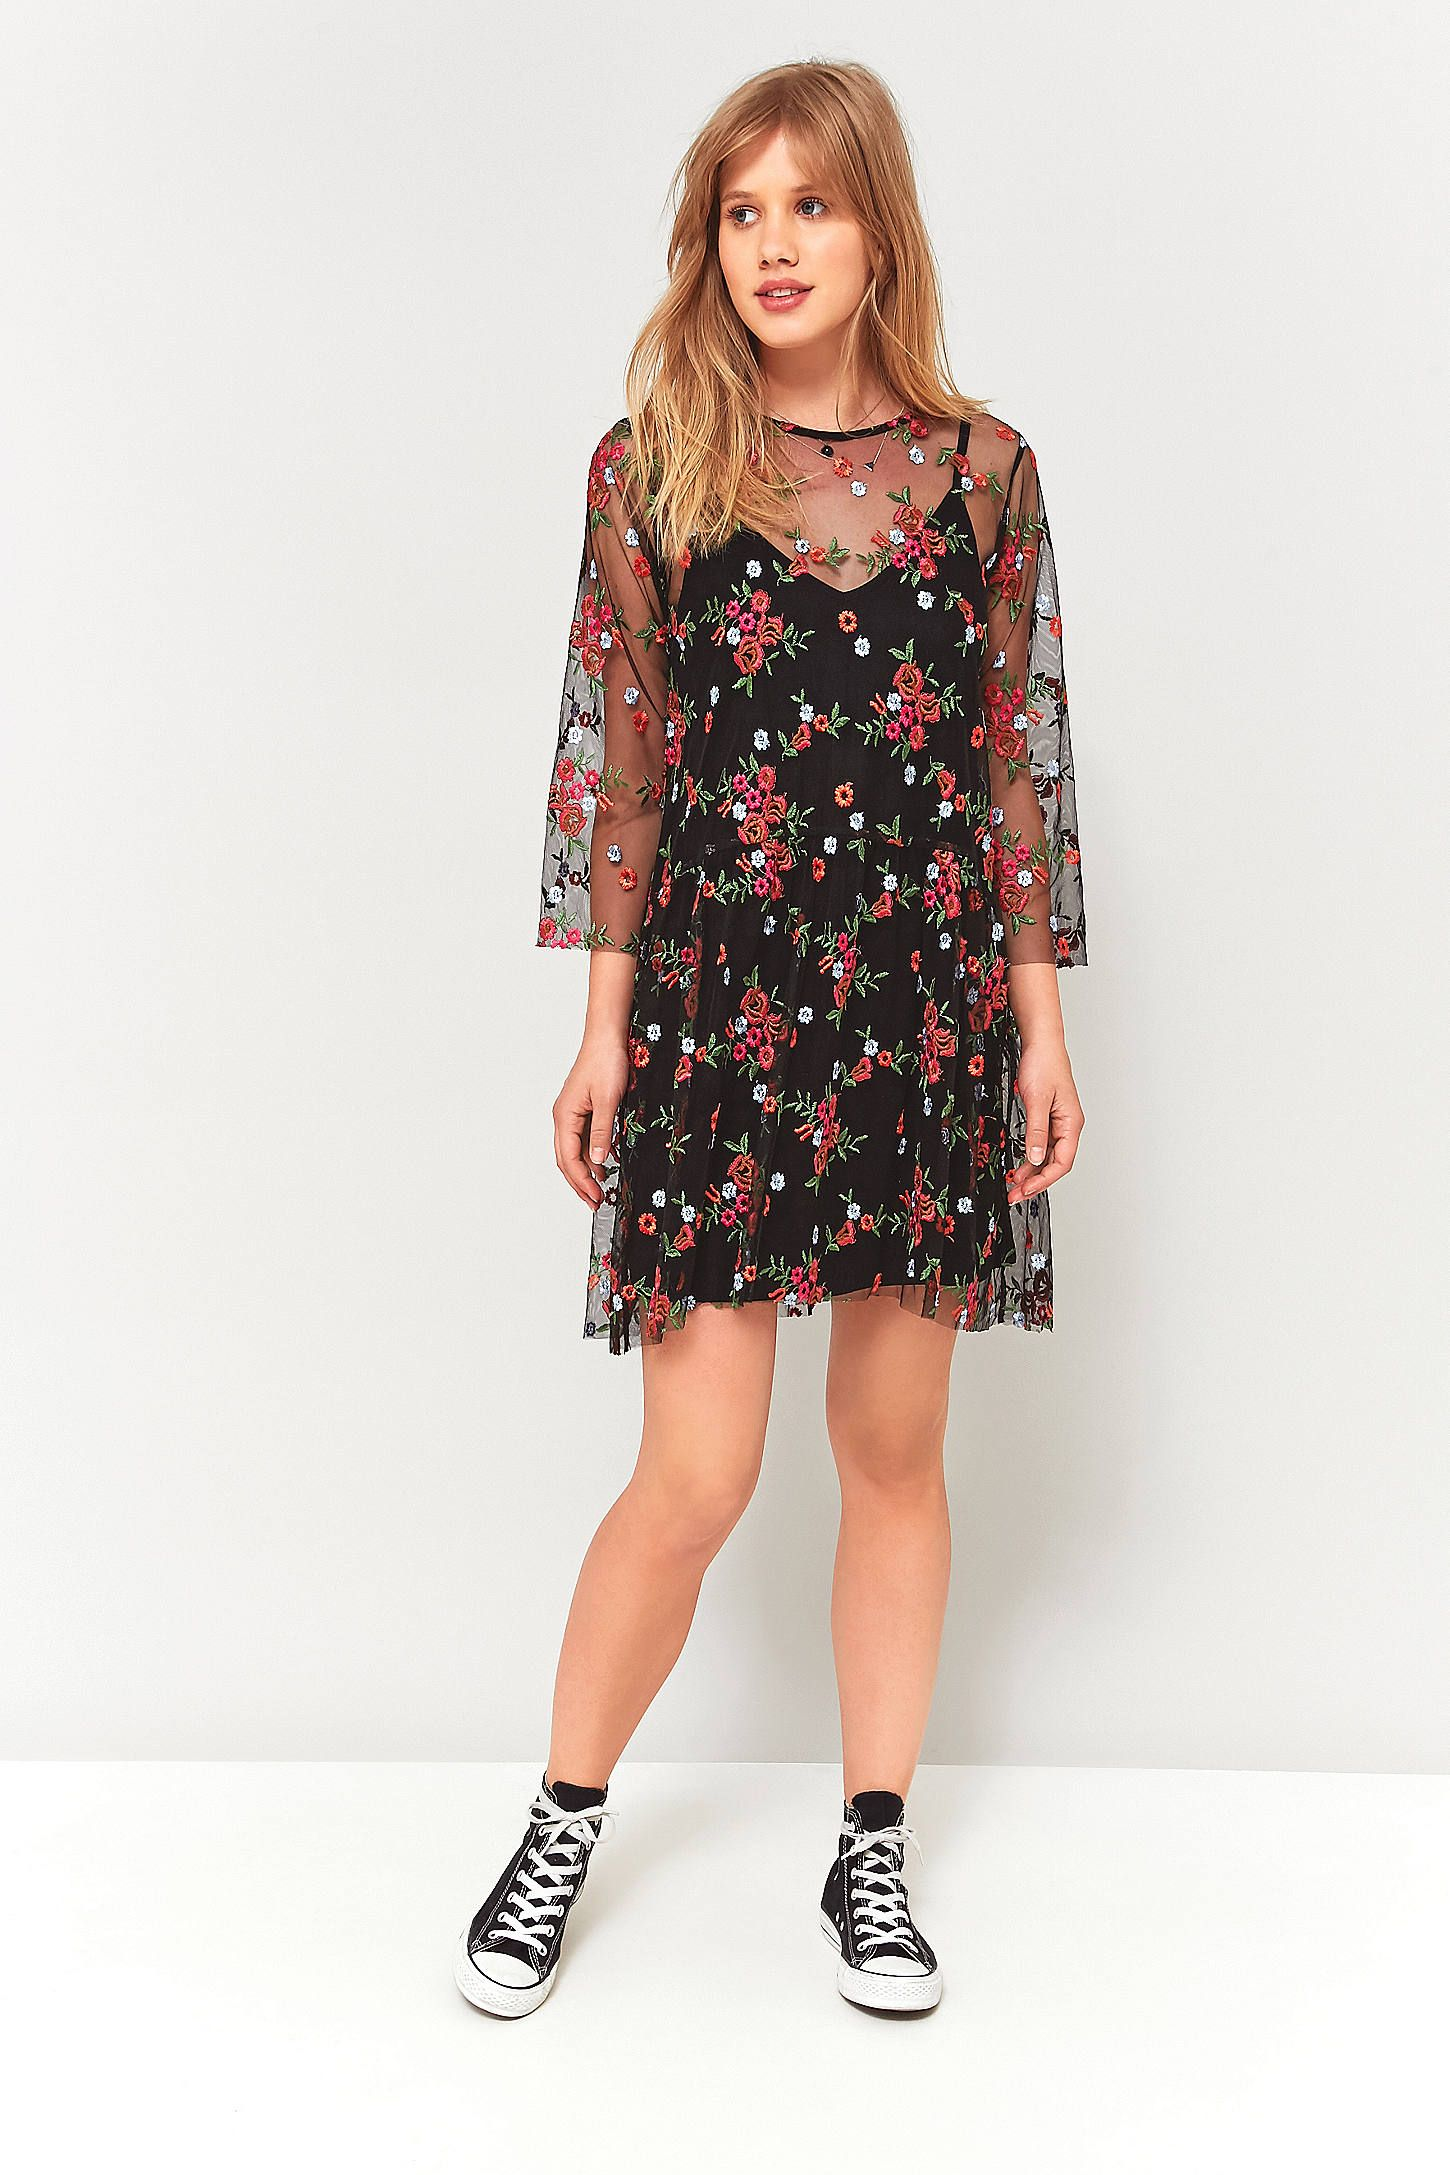 Pins And Needles Clothing Pins & Needles Floral Embroidery Mesh Smock Dress  Floral